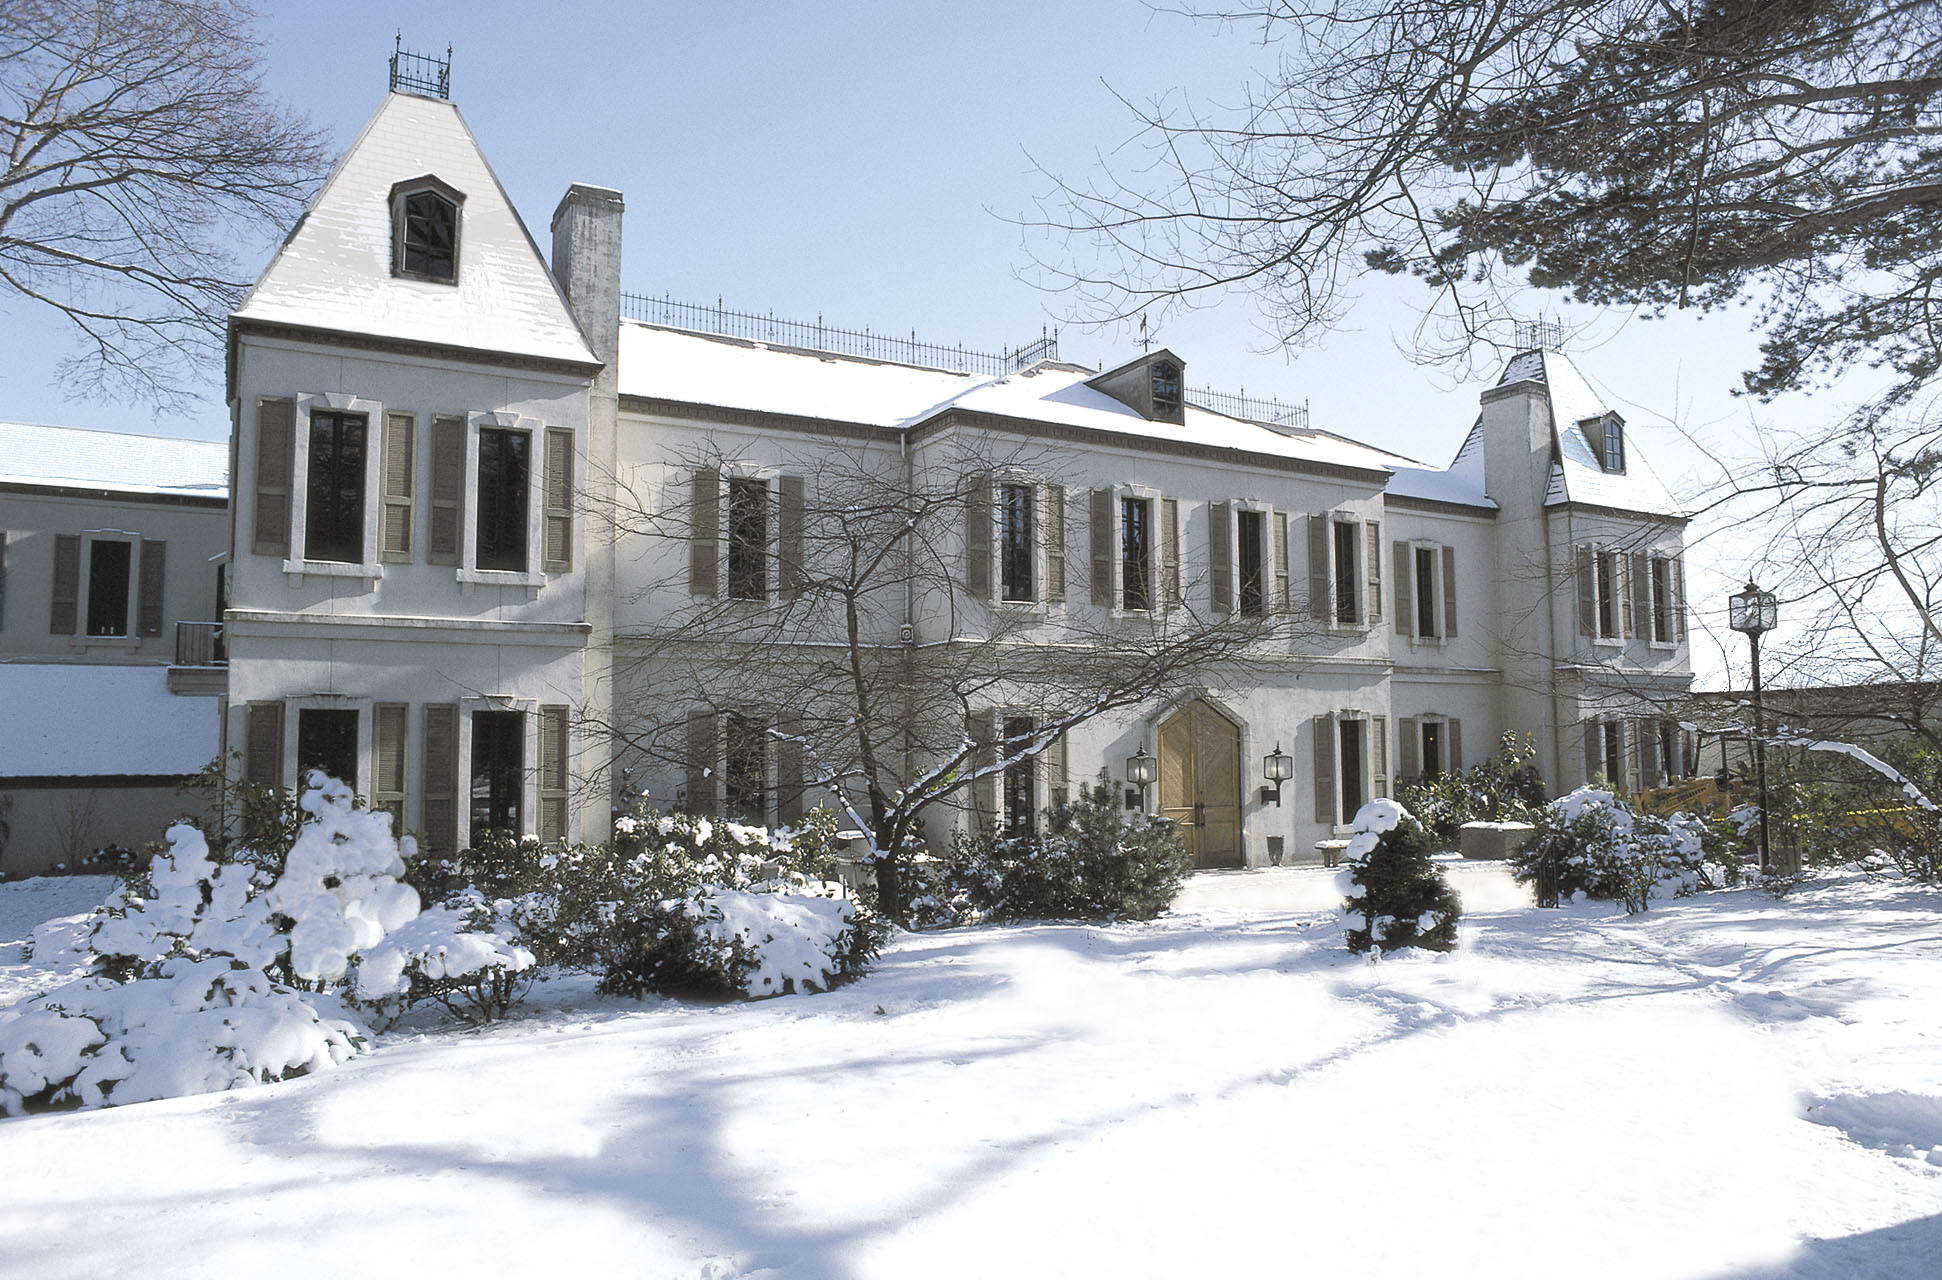 Chateau Ste. Michelle: Winter Wonderland